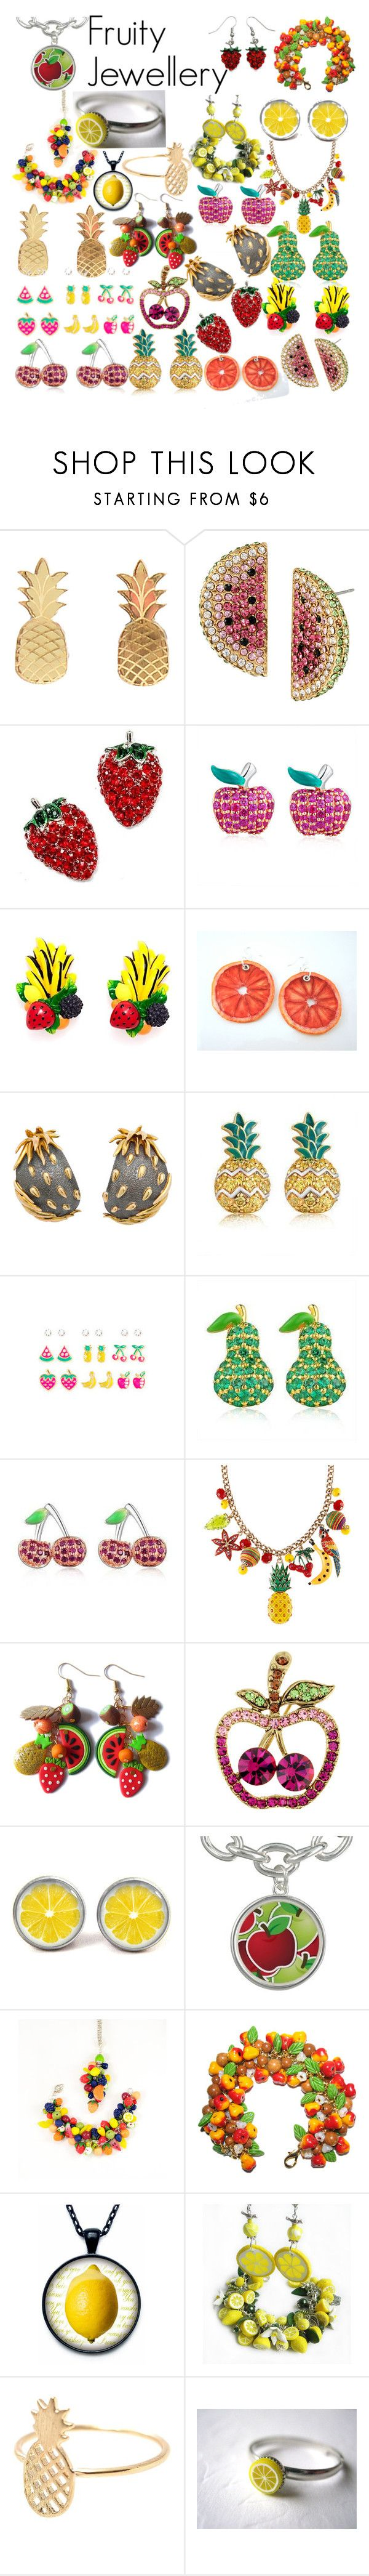 """""""Fruity Jewellery..."""" by imogencara ❤ liked on Polyvore featuring Vinca, Betsey Johnson, MBLife.com and Marilyn F. Cooperman"""